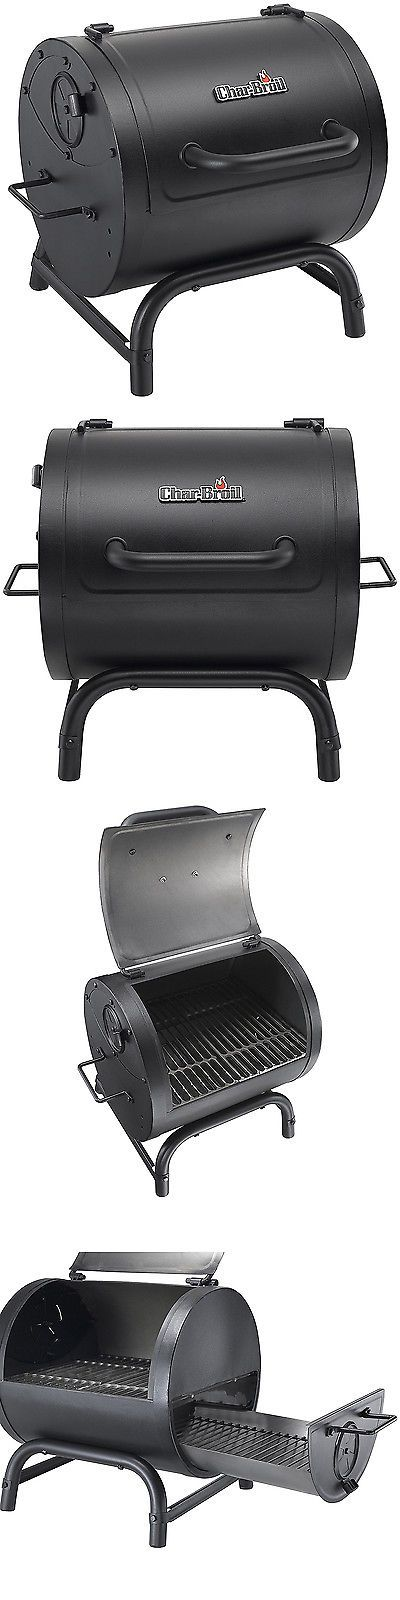 Barbecues Grills and Smokers 151621: Char Broil American Gourmet Table Top Charcoal Grill W 250 Sq In Of Cook Space -> BUY IT NOW ONLY: $69.99 on eBay!